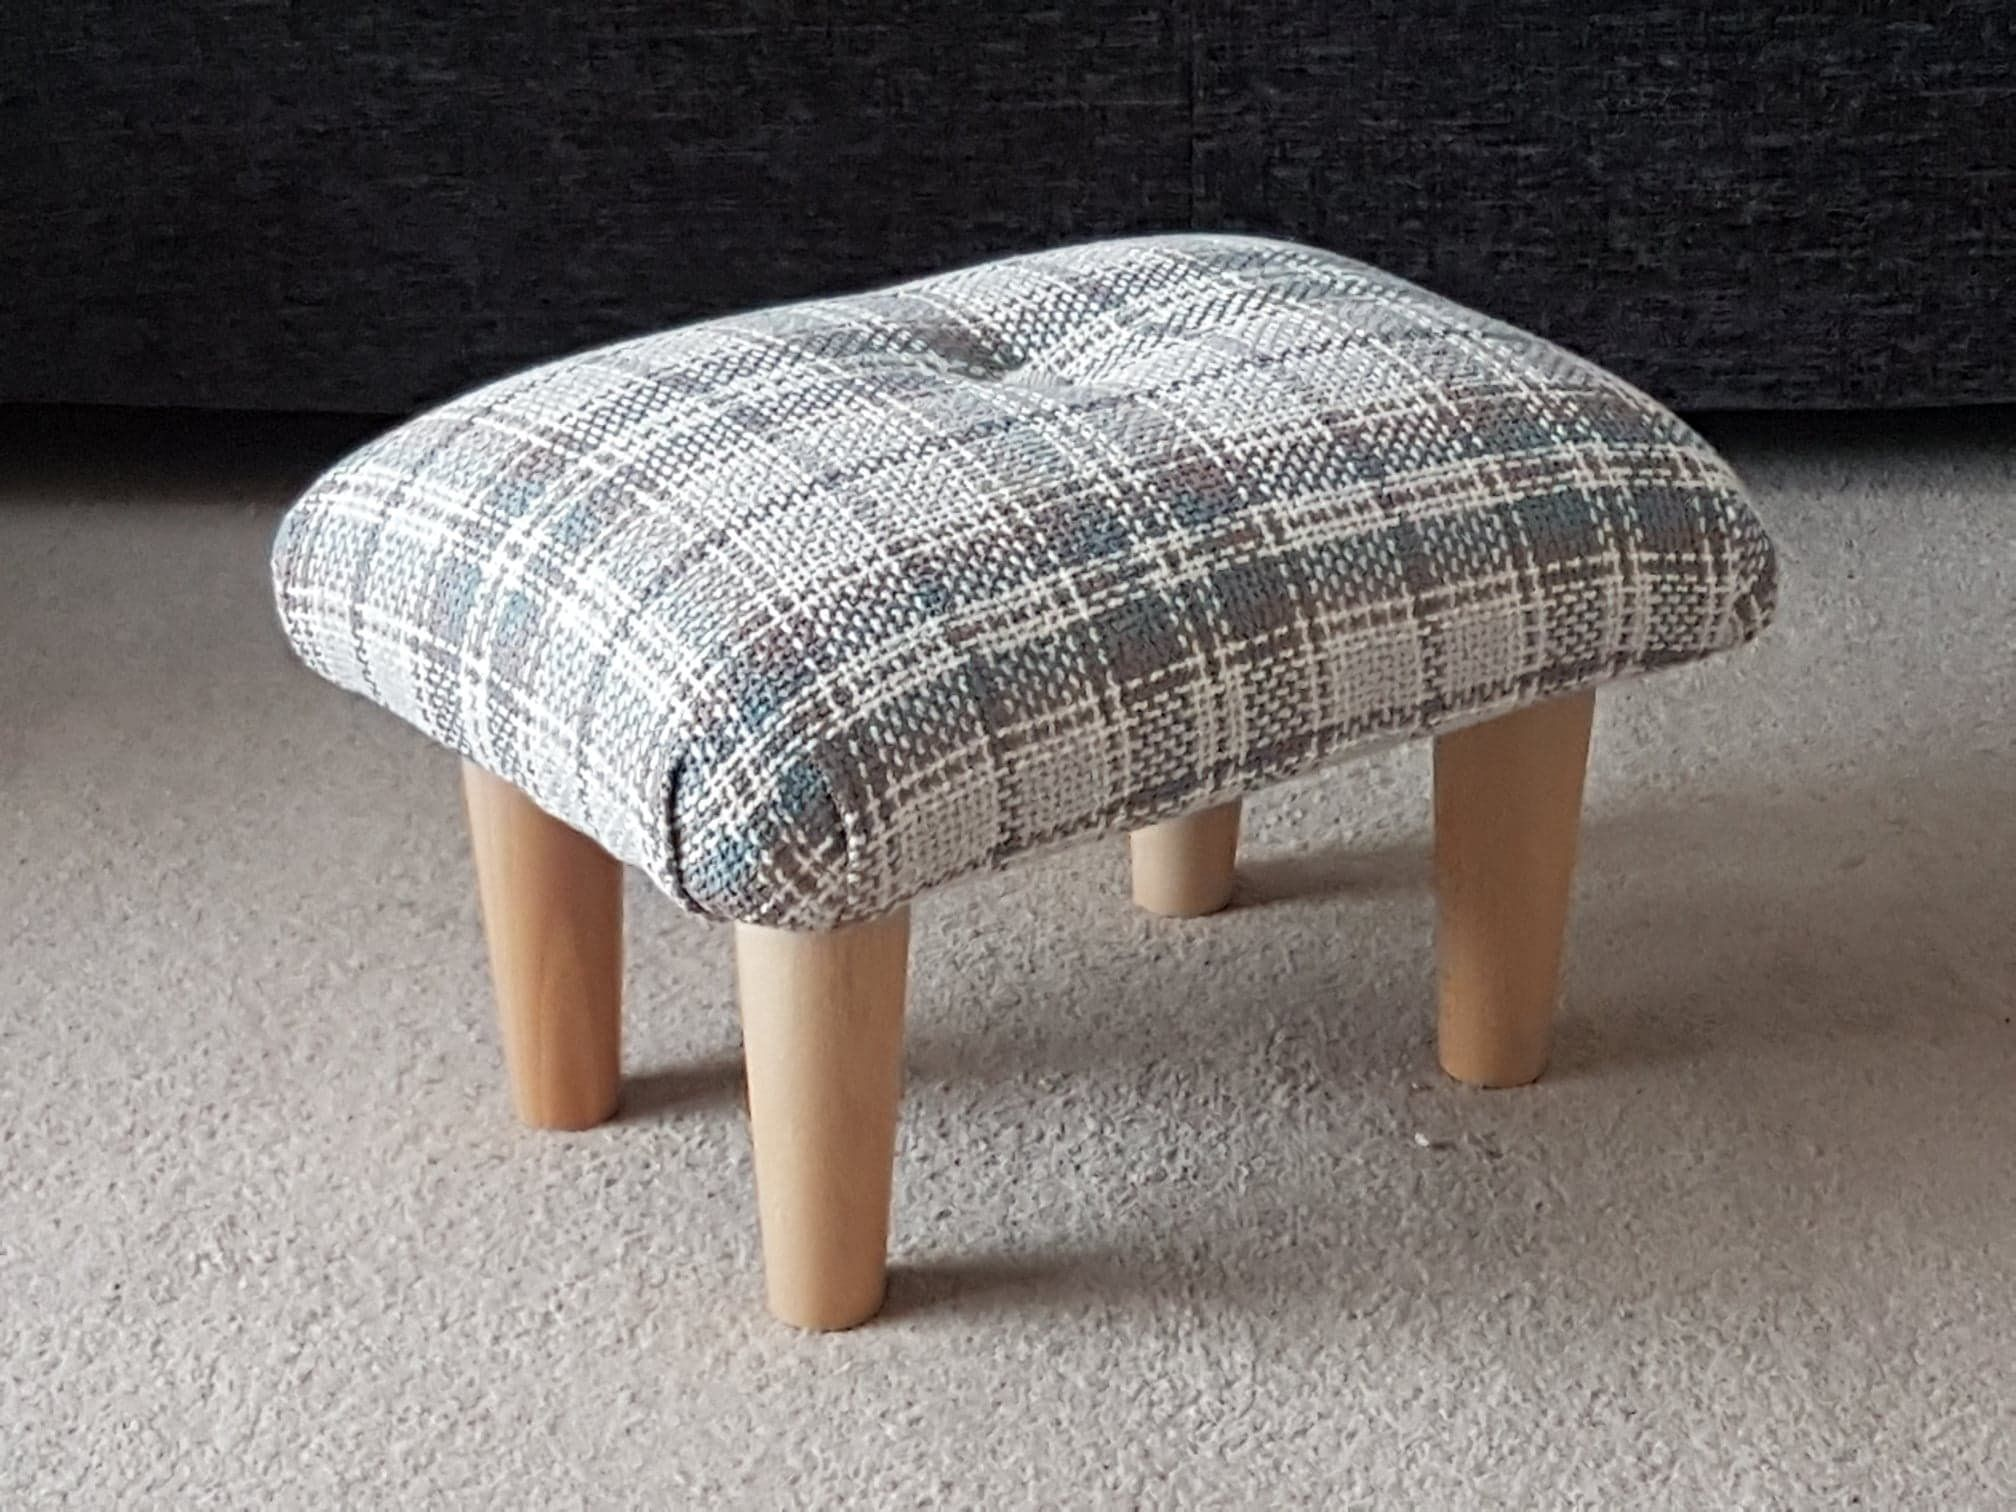 Small Footstool Upholstered Footstool Gift Idea Small Foot Stool Upholstered Foot Stool Handmade Foot Small Footstool Upholstered Footstool Footstool